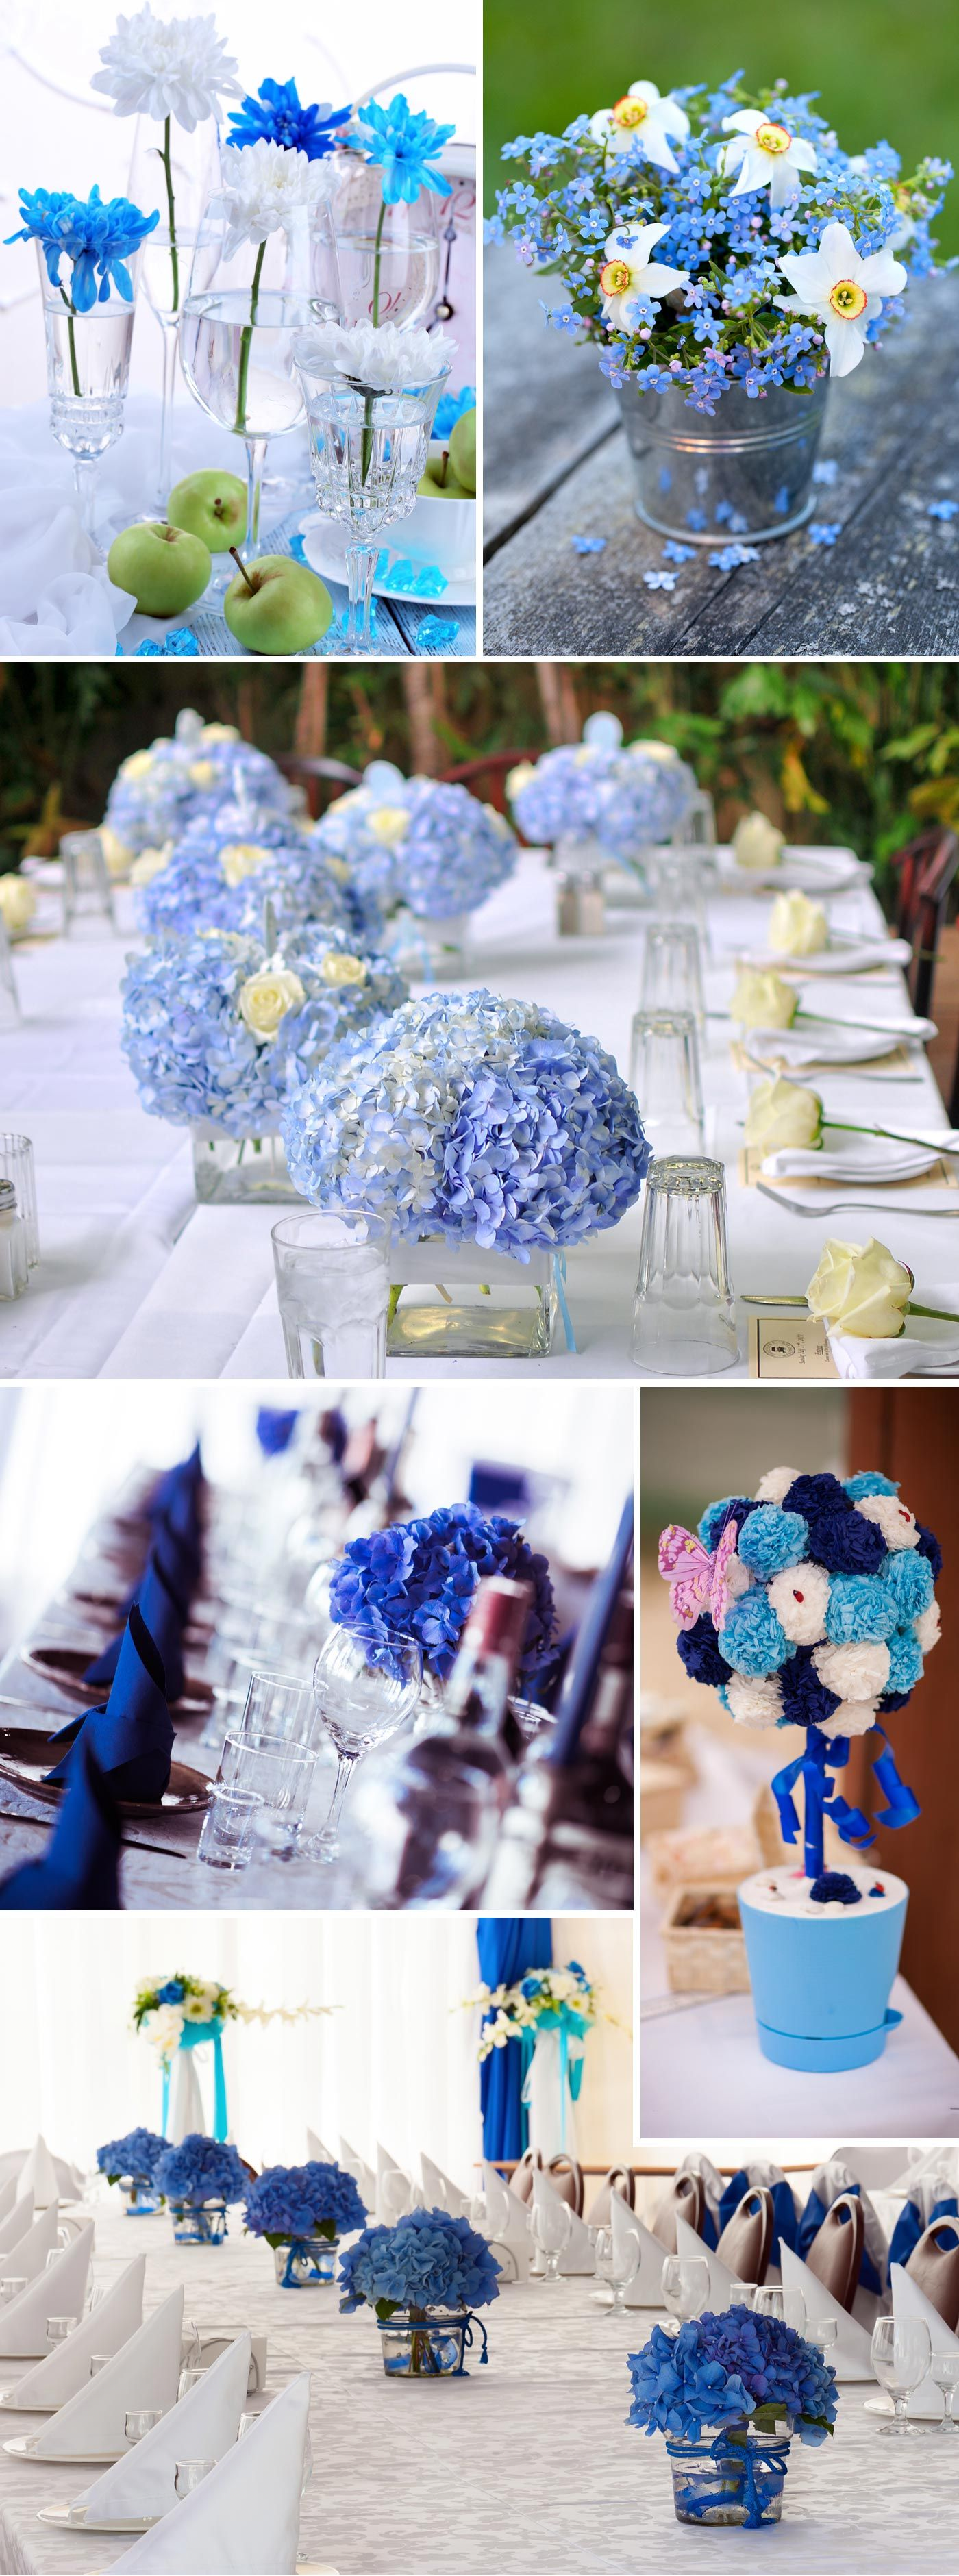 Tischdeko Blau Tischdeko In Türkis Blau Wedding Pinterest Wedding